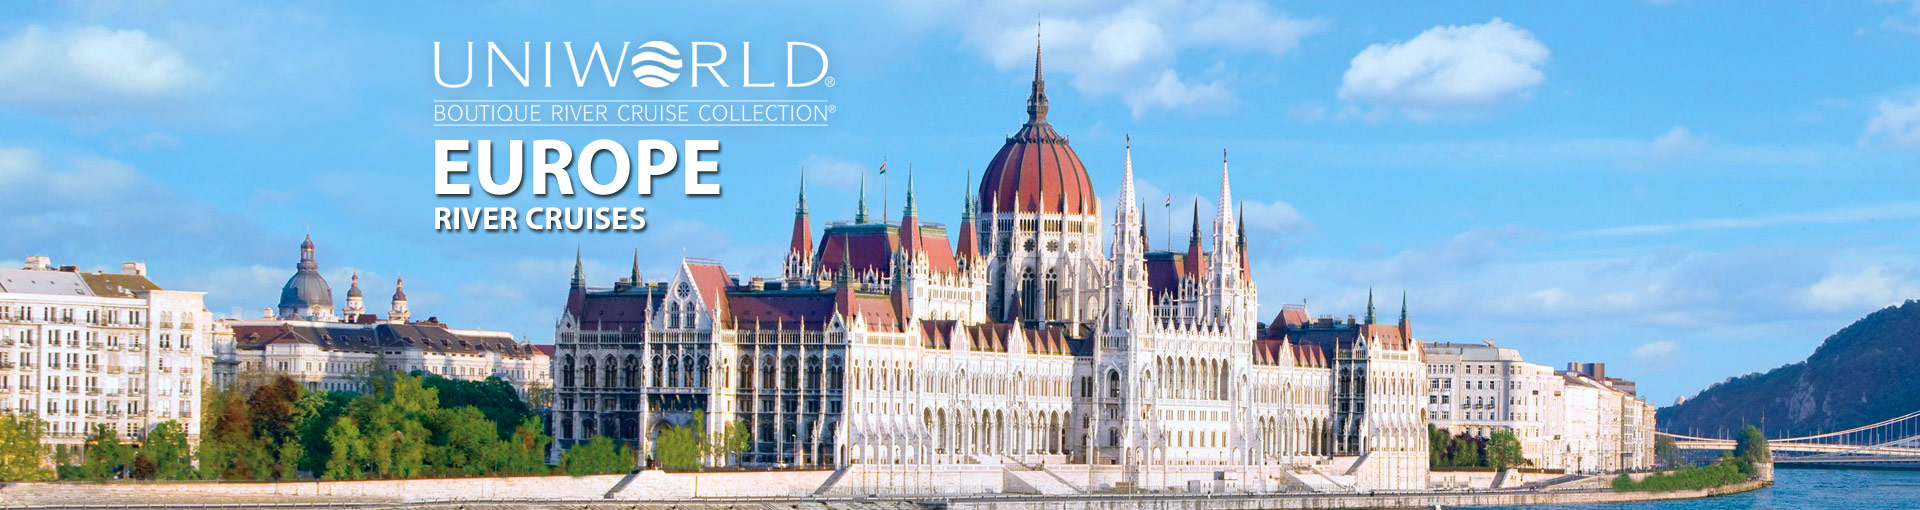 Uniworld River Cruises Europe Cruises